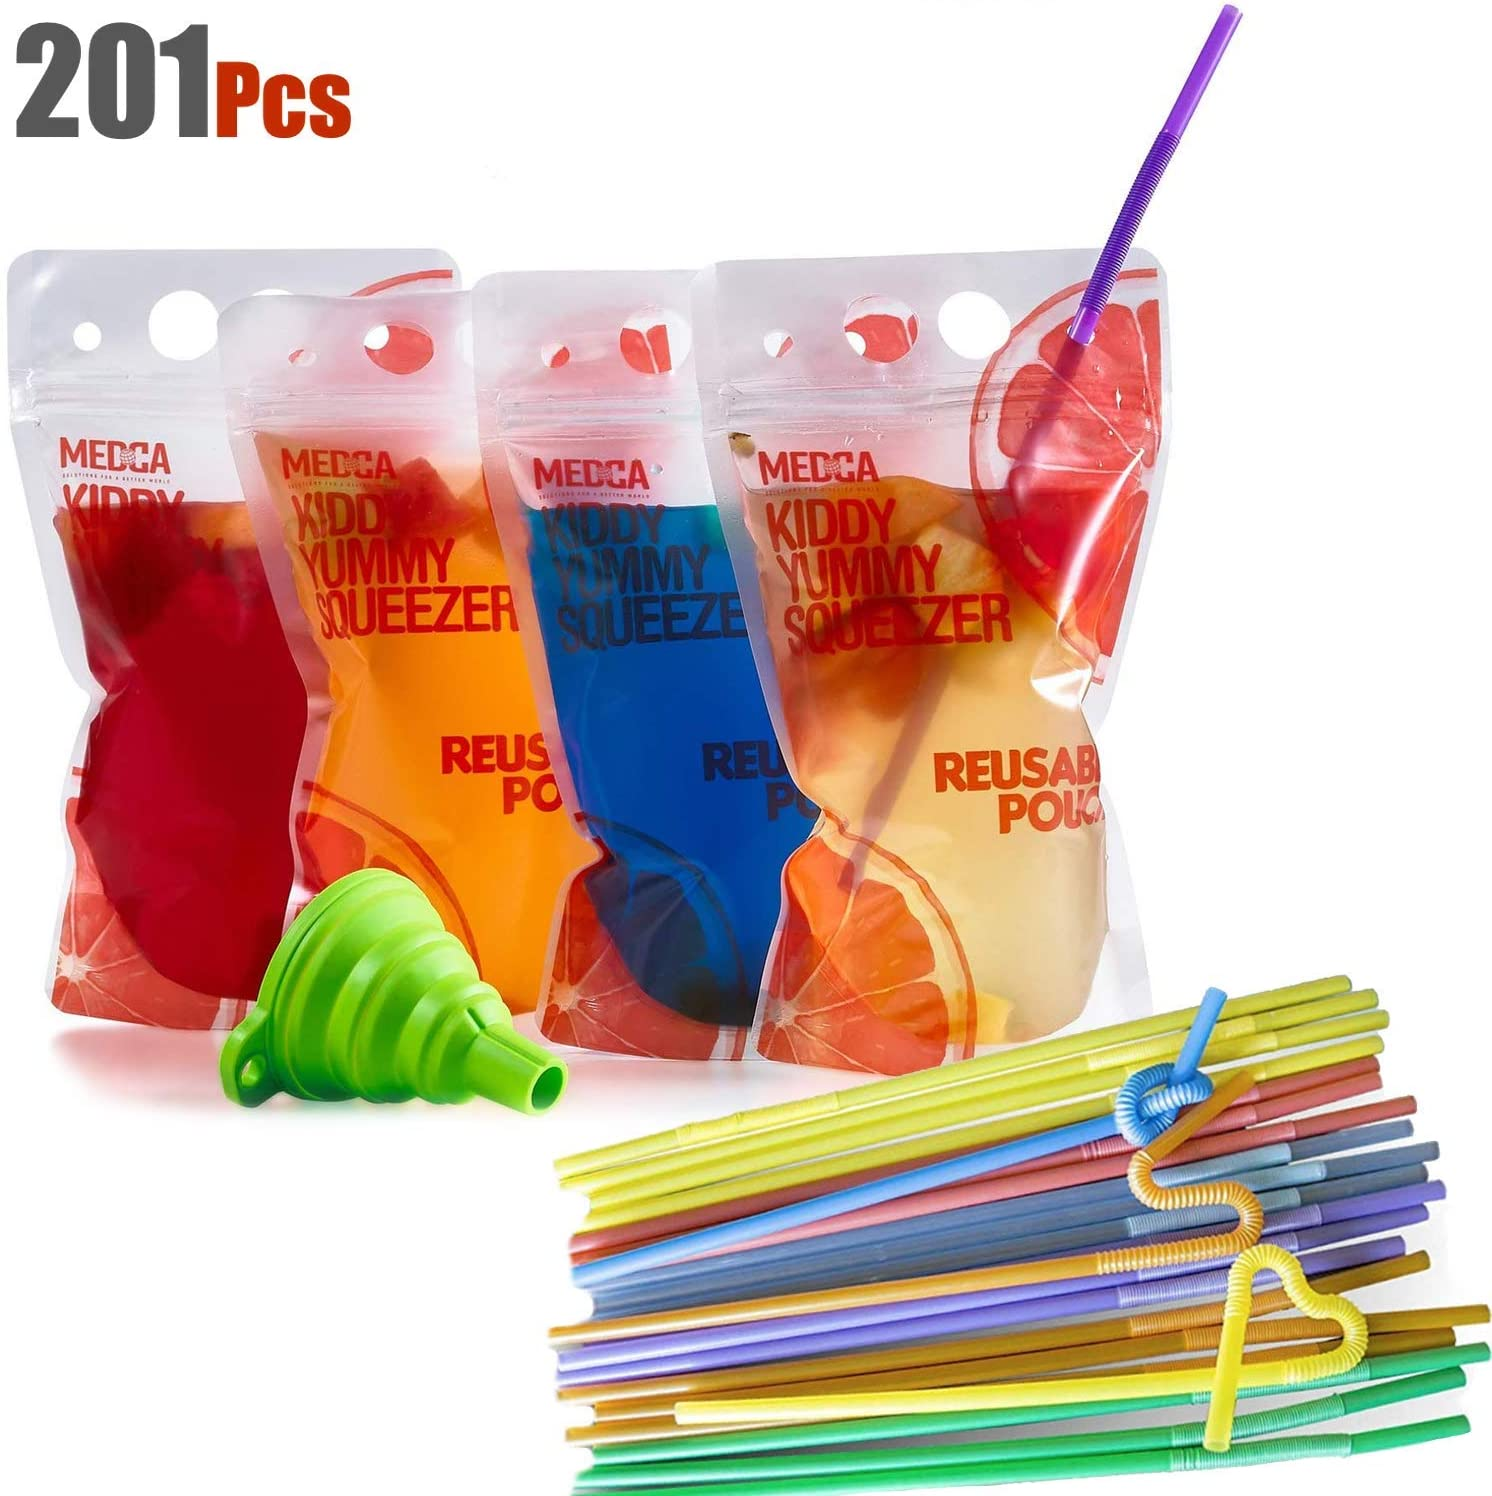 Reusable Drink Pouches - (201 Piece Set) 100 Clear Drink Bags + 100 Straws - Double Zipper Reusable Smoothie Juice, Clear Zipper Pouch Storage Bags NO LEAKS and Environmentally Friendly & BPA Free